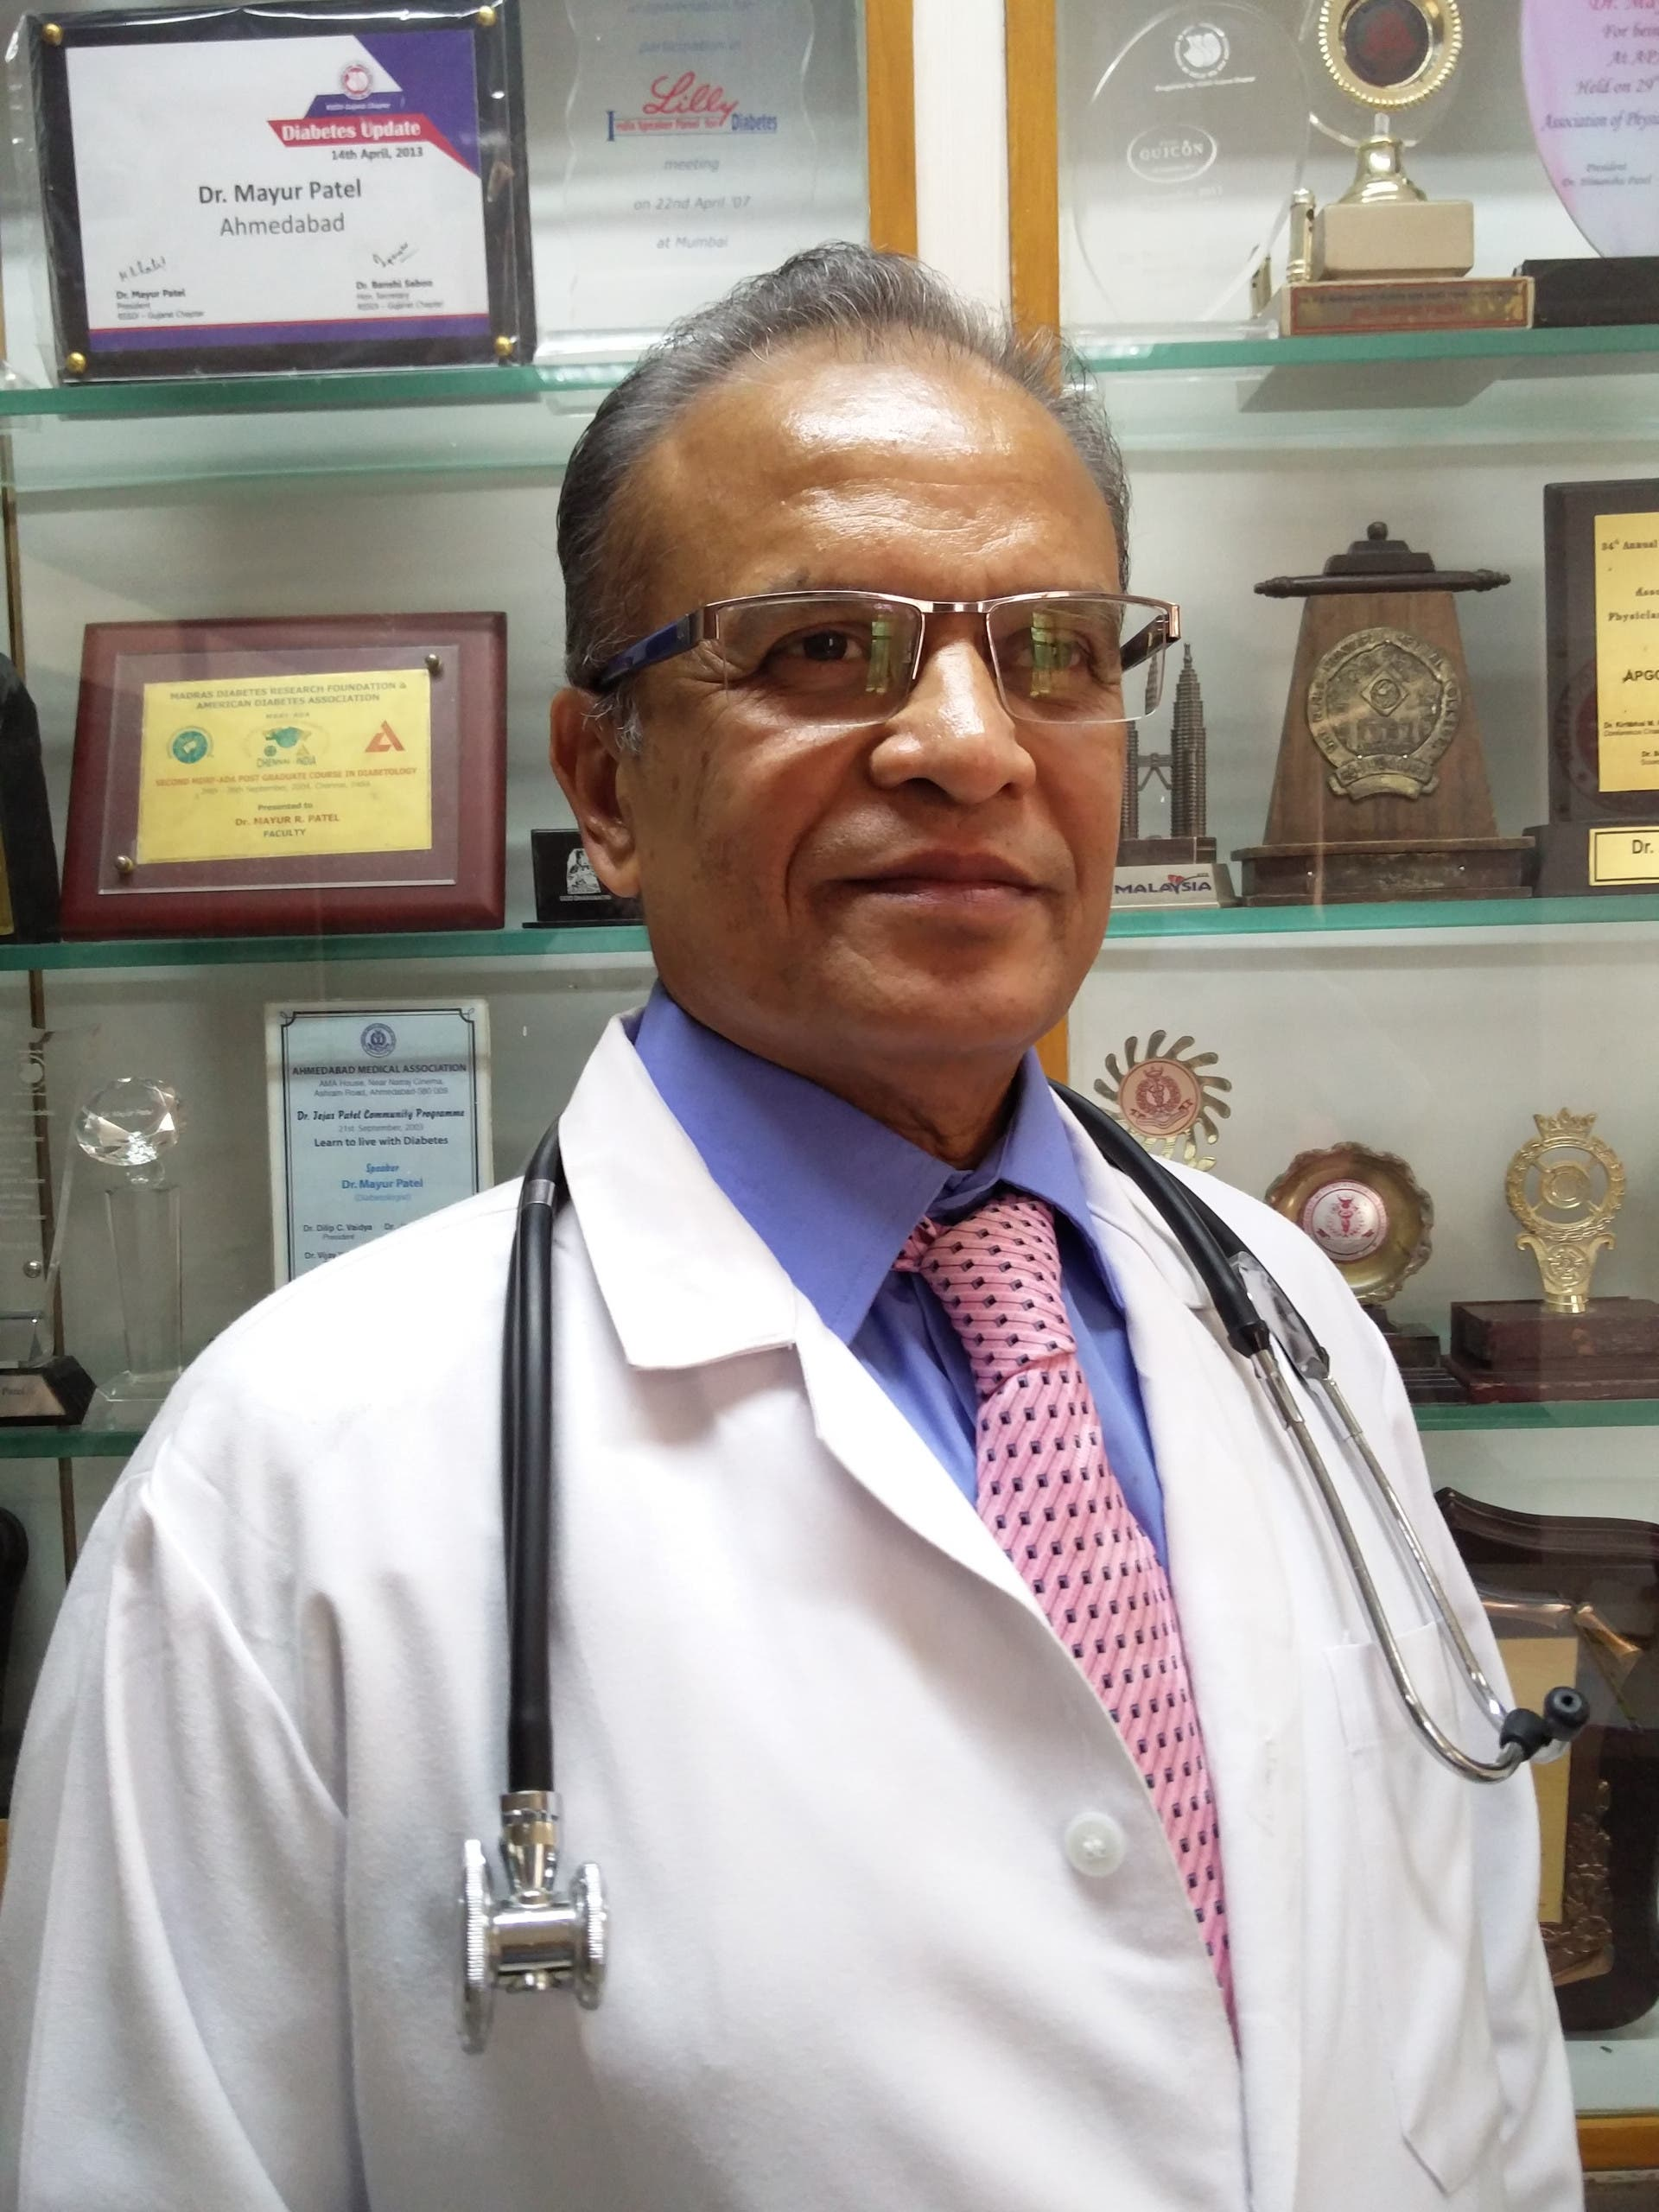 Medical experts like Dr Mayur Patel admit that assaults on doctors have assumed frightening proportions